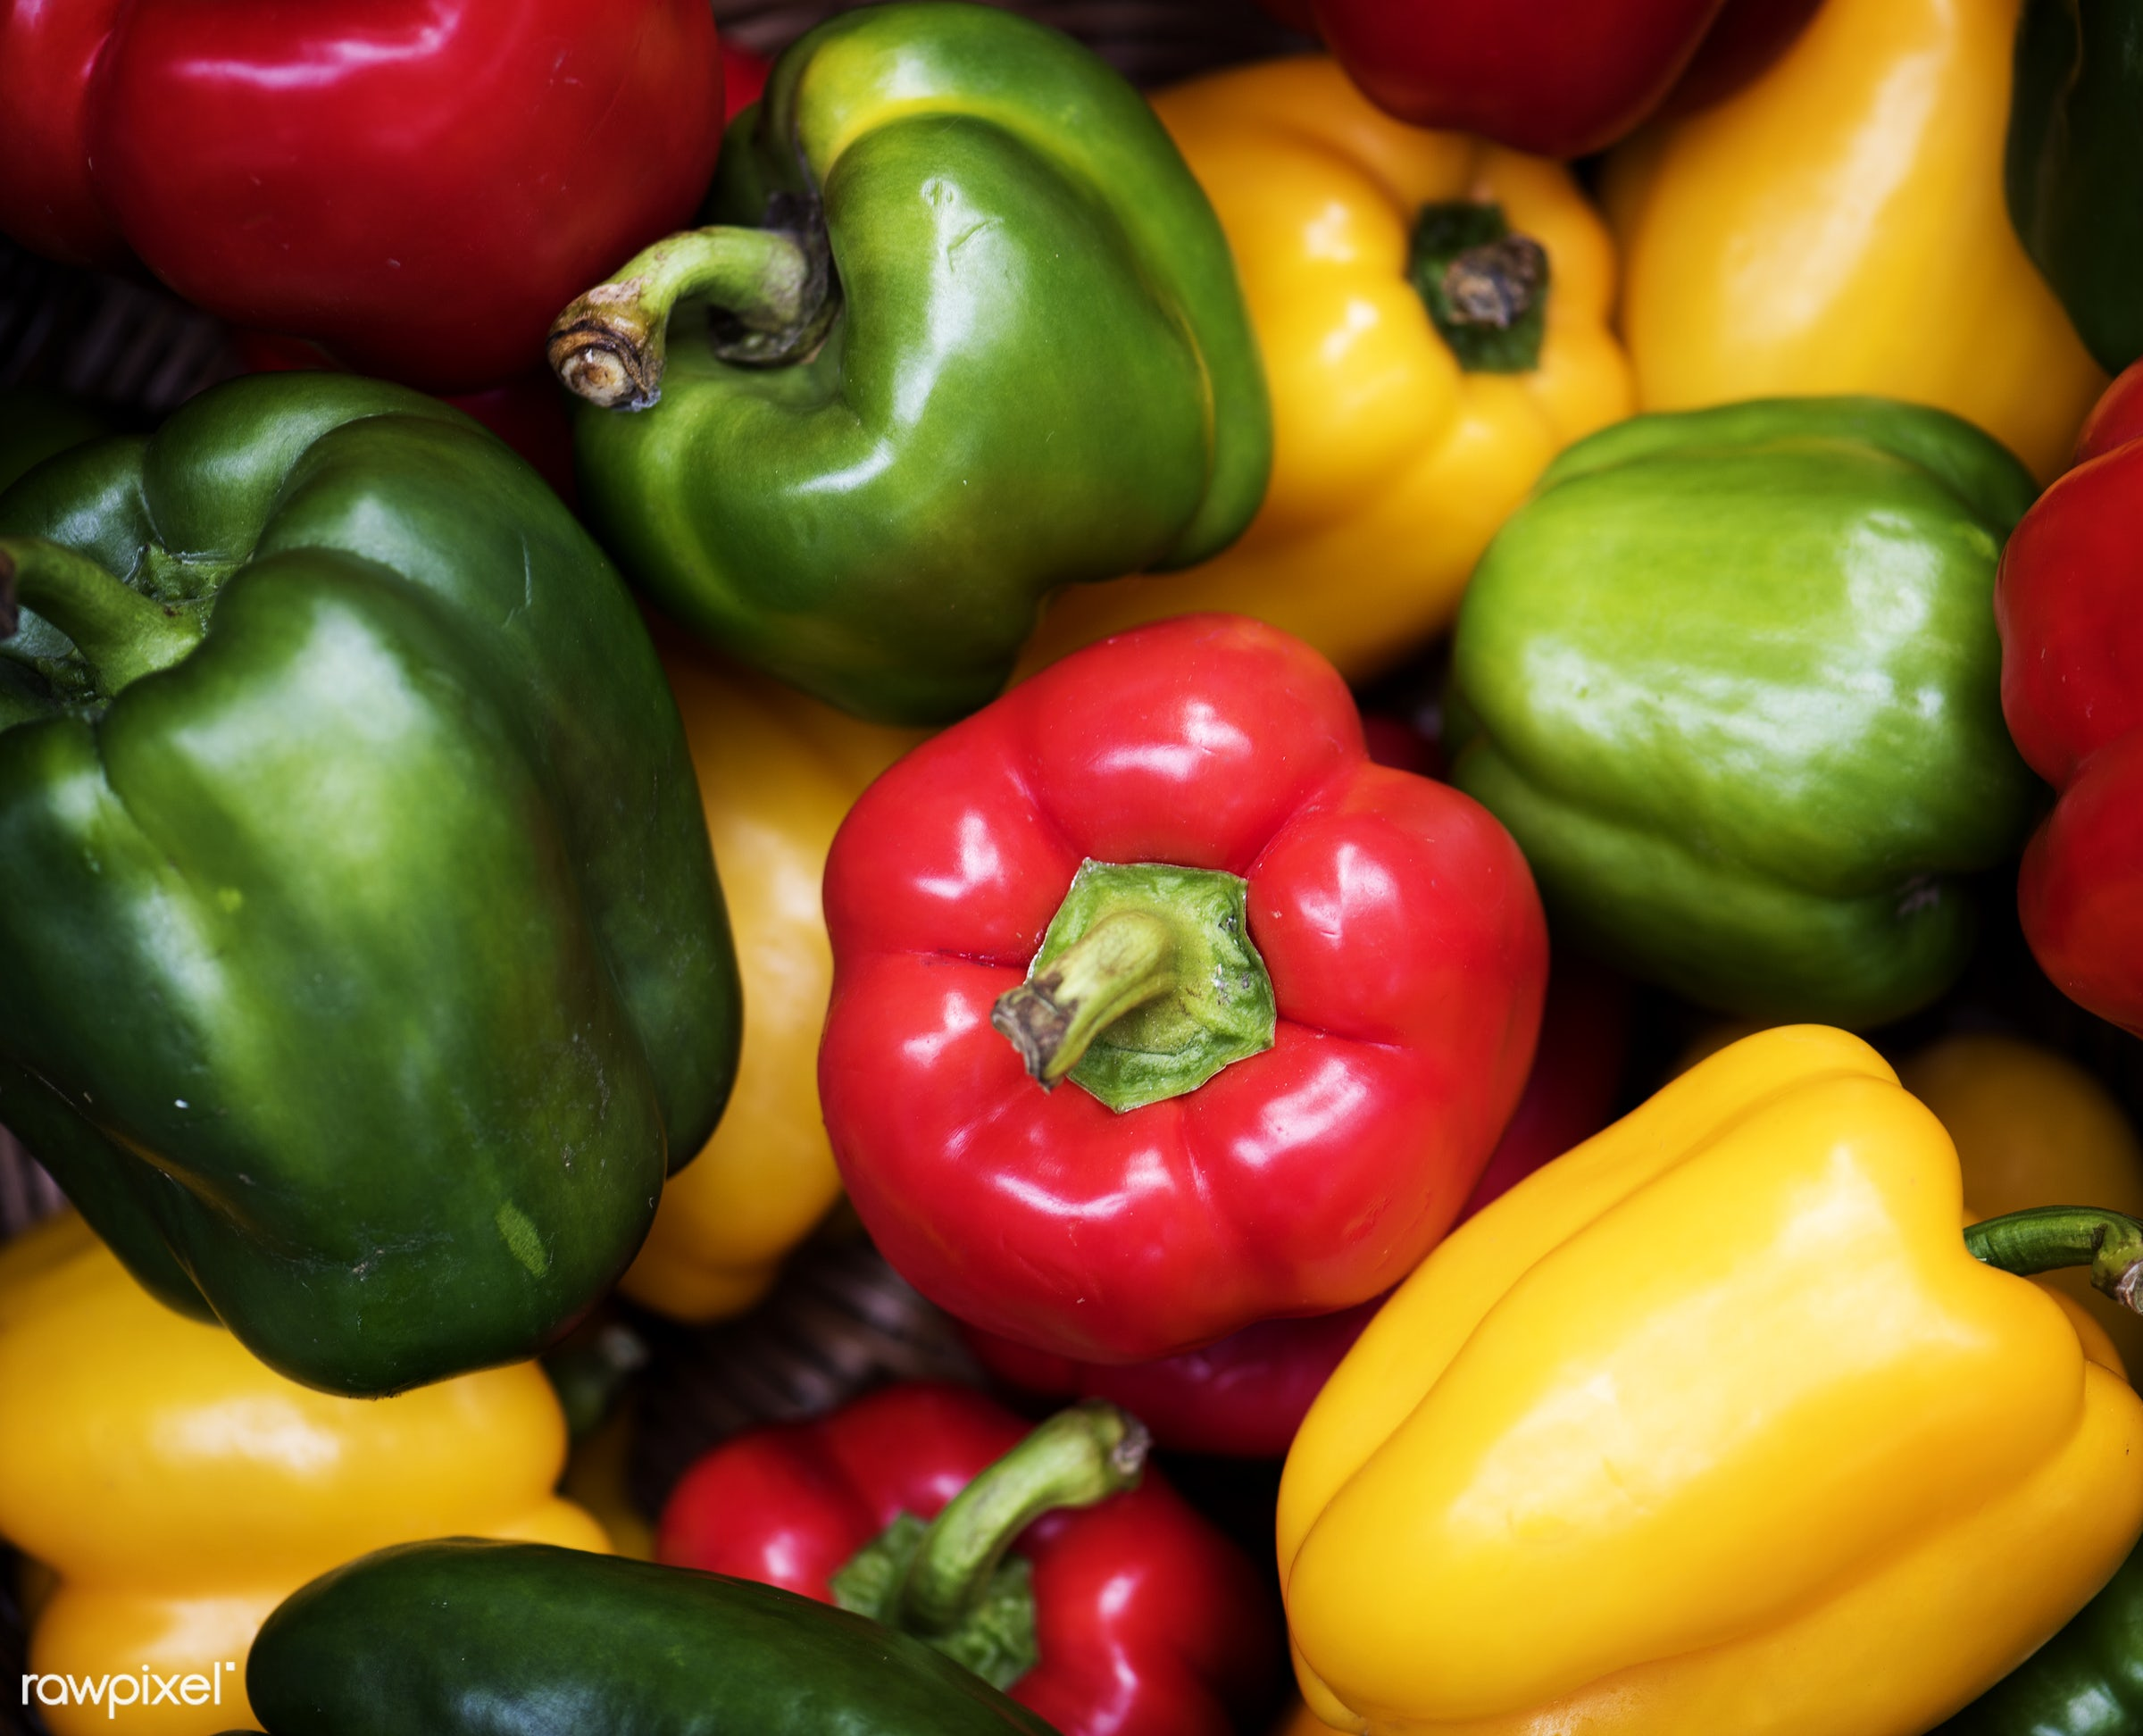 Red, green and yellow bell peppers - raw, nobody, sweet peppers, set, yellow, farm, ingredients, nature, fresh, bell peppers...